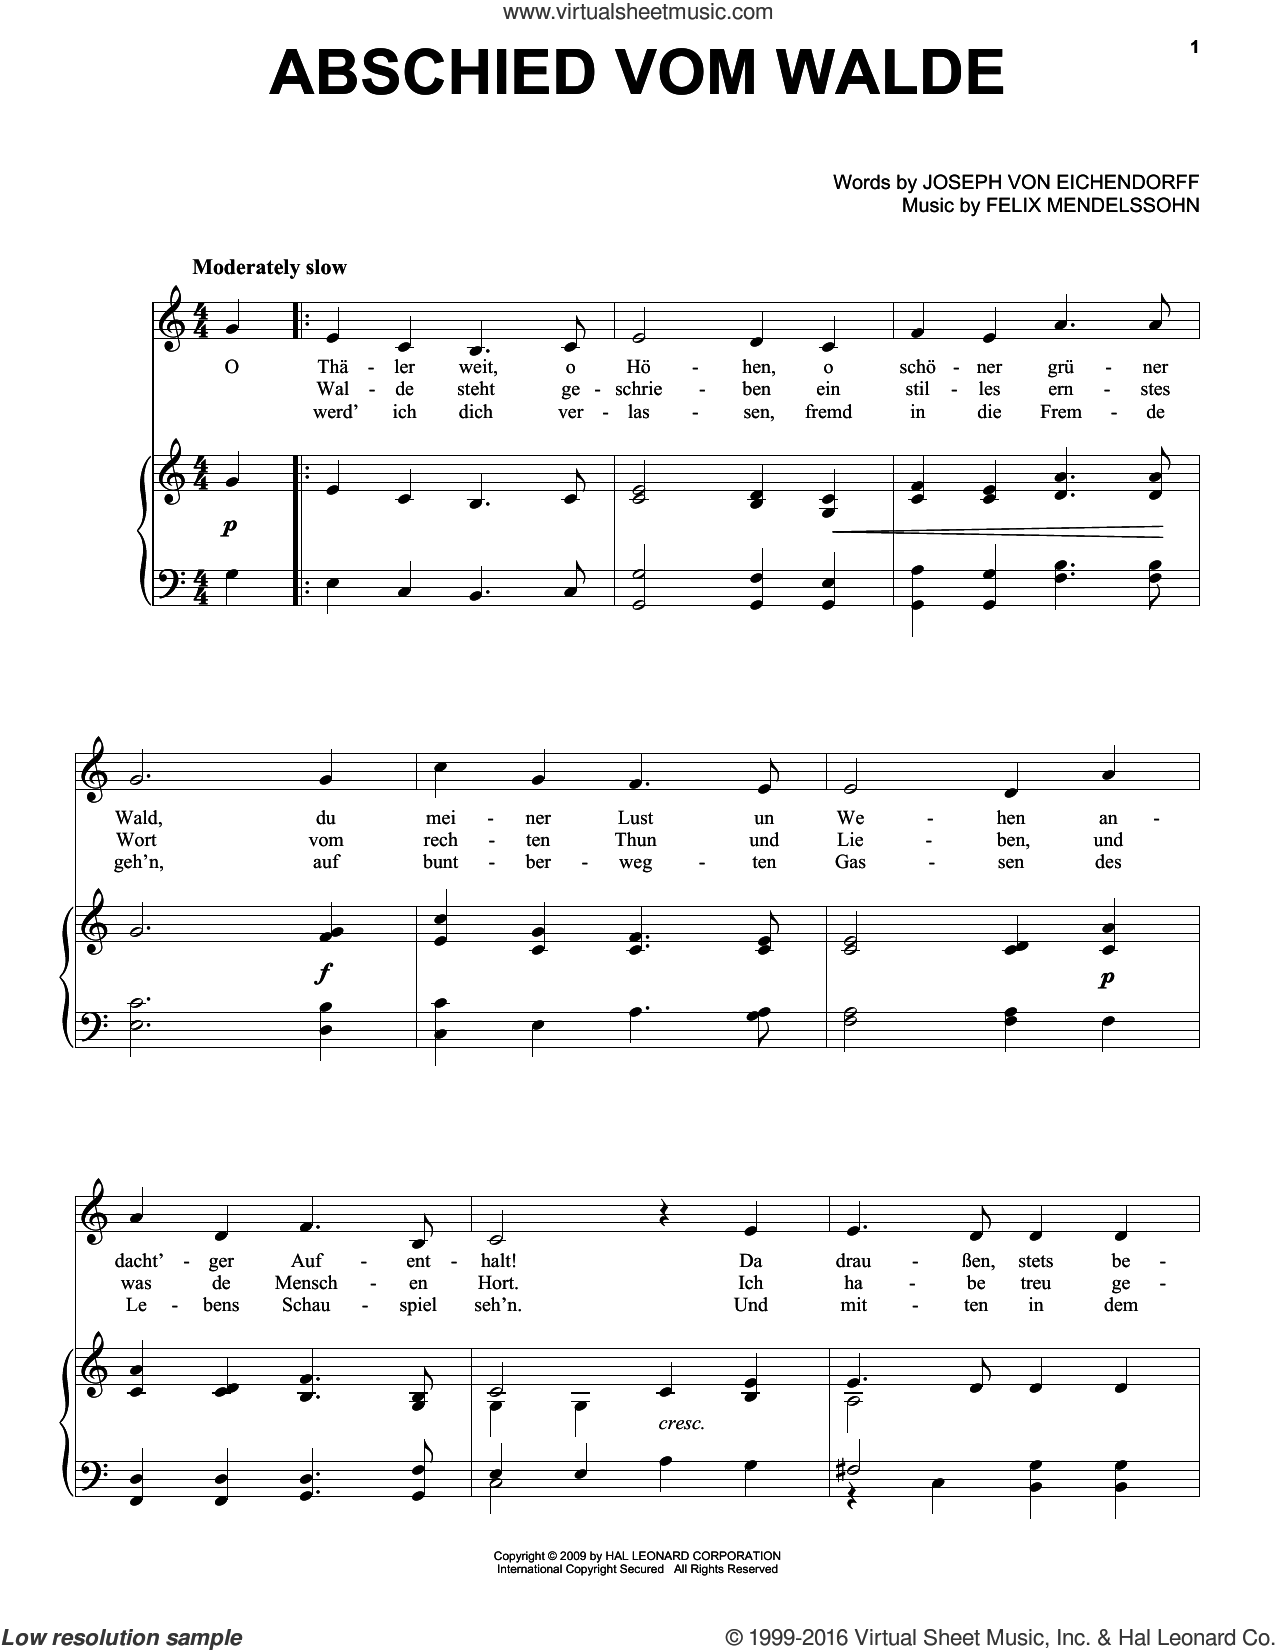 Abschied Vom Walde sheet music for voice, piano or guitar by Felix Mendelssohn-Bartholdy and Joseph von Eichendorff, intermediate skill level